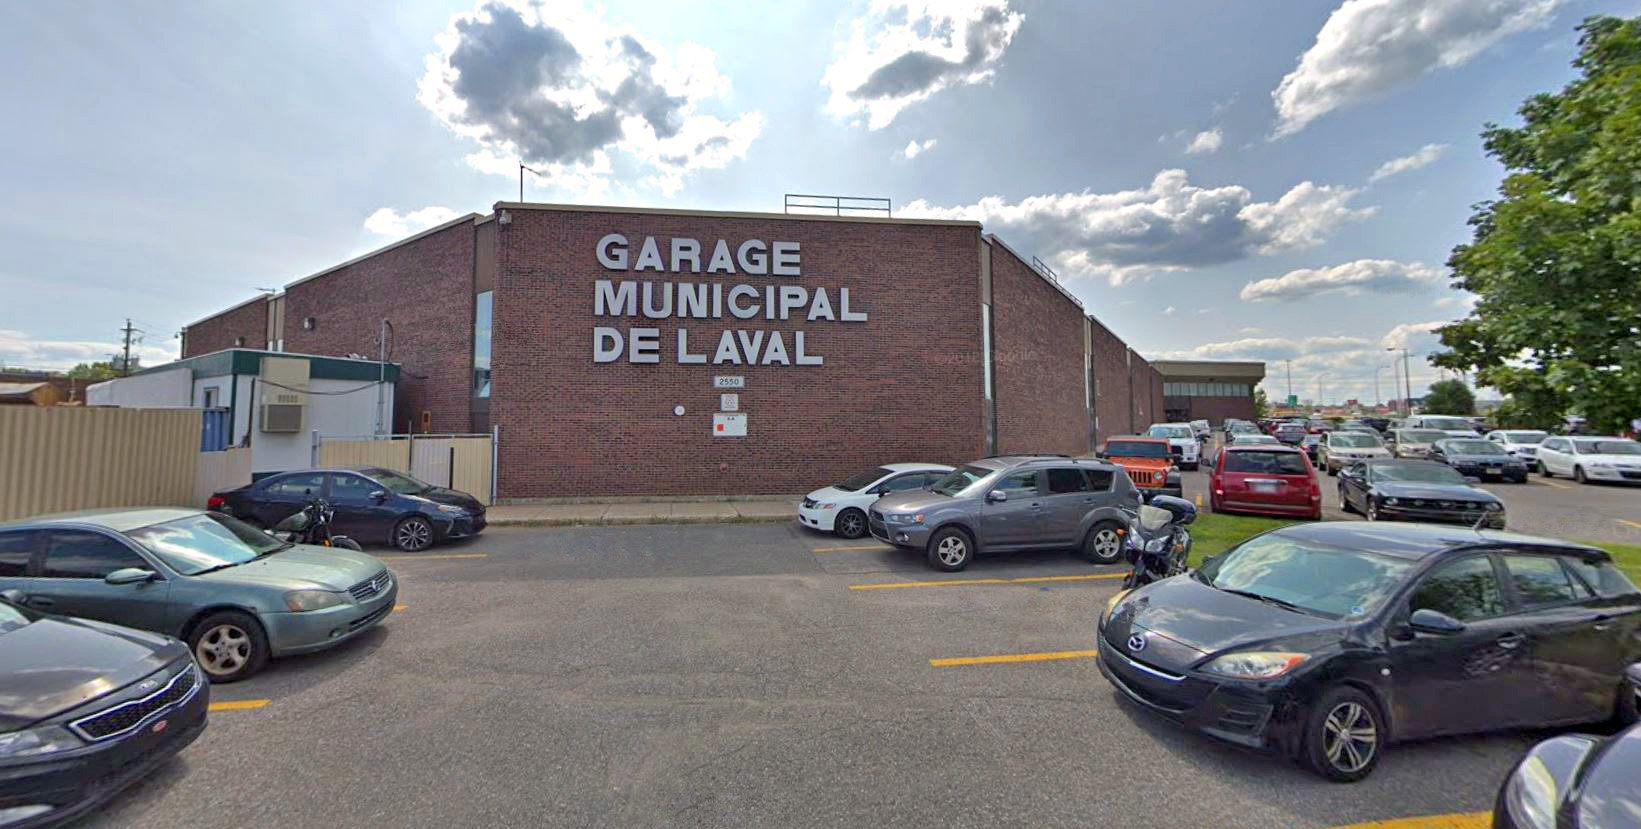 Laval public works employees fired for using marijuana on the job